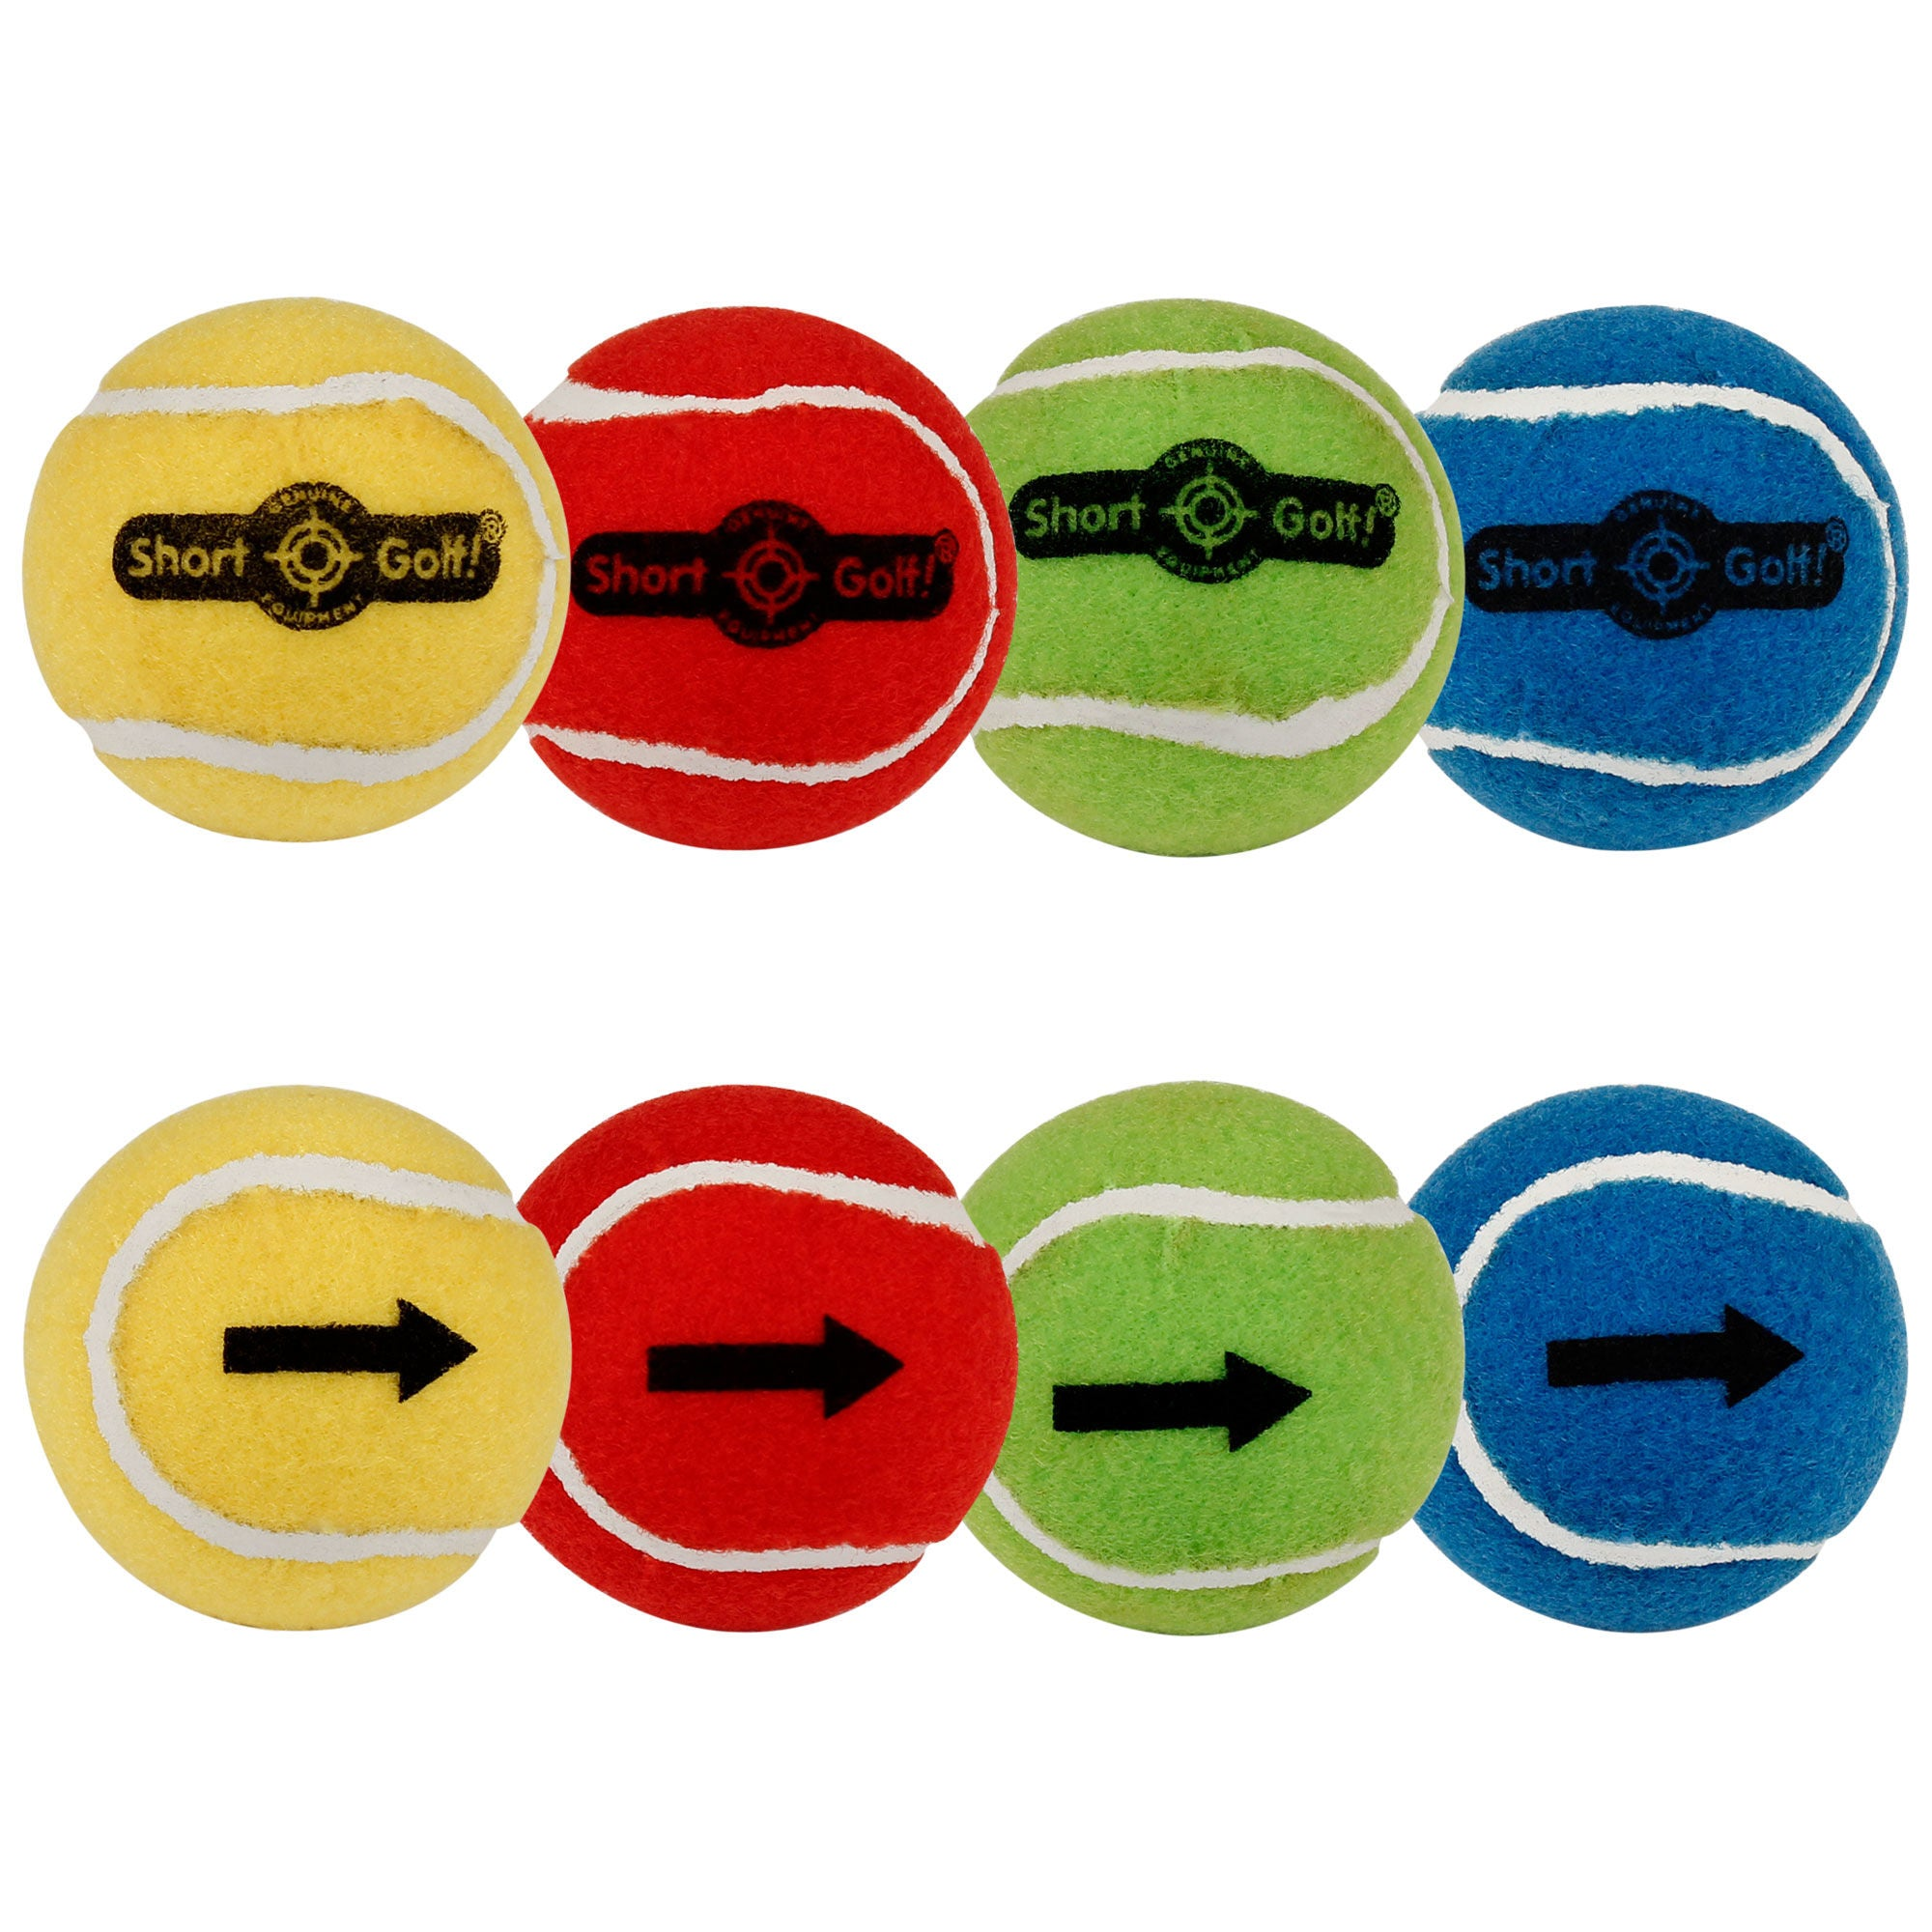 ShortGolf ballz! (pack of 8) - Putterfingers.com